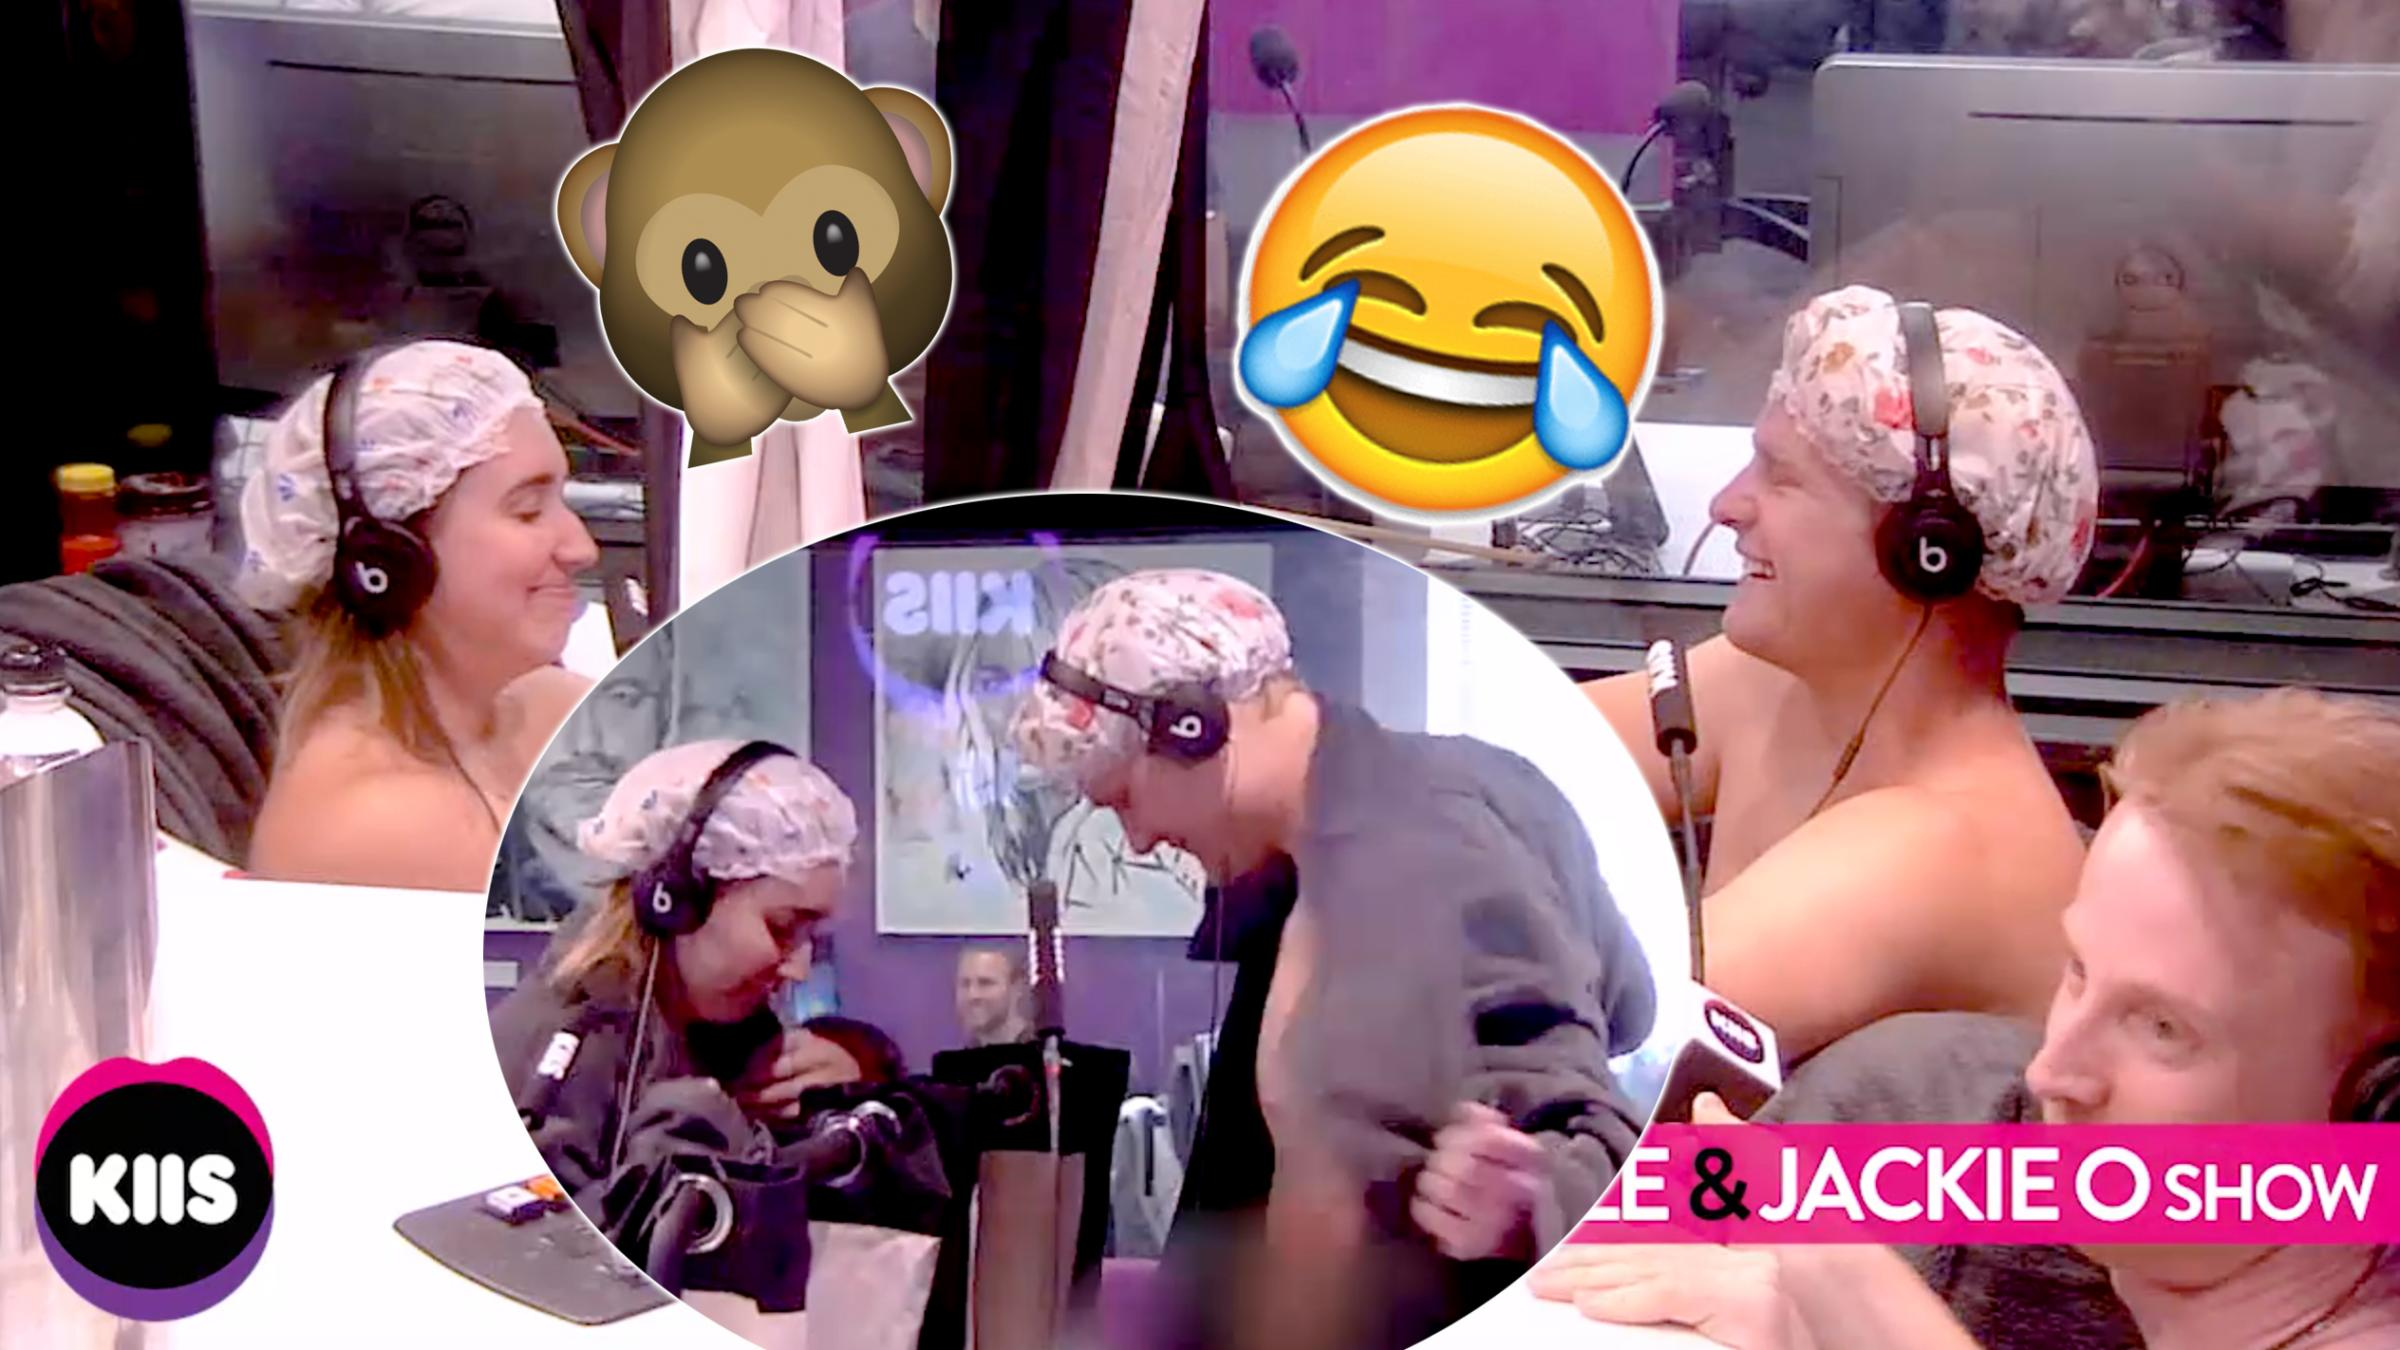 Kj Show: A Boss & Employee Get Naked On Buddies In The Bath